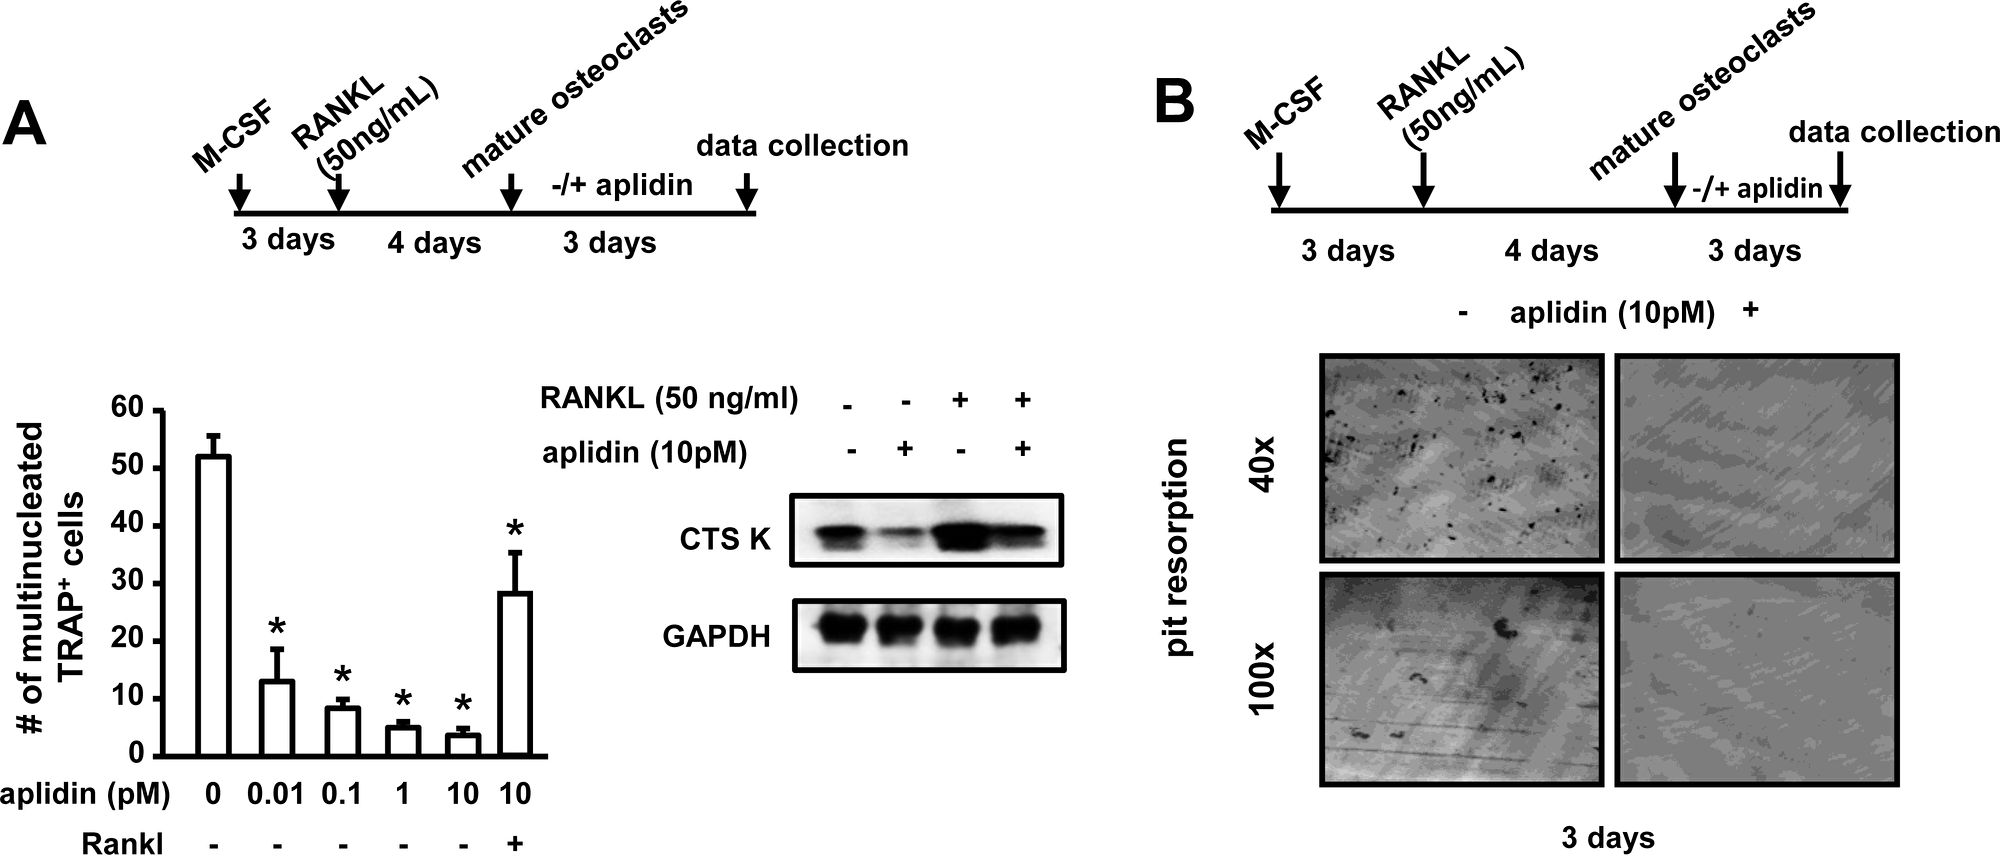 Aplidin decreases the number and activity of mature osteoclasts.